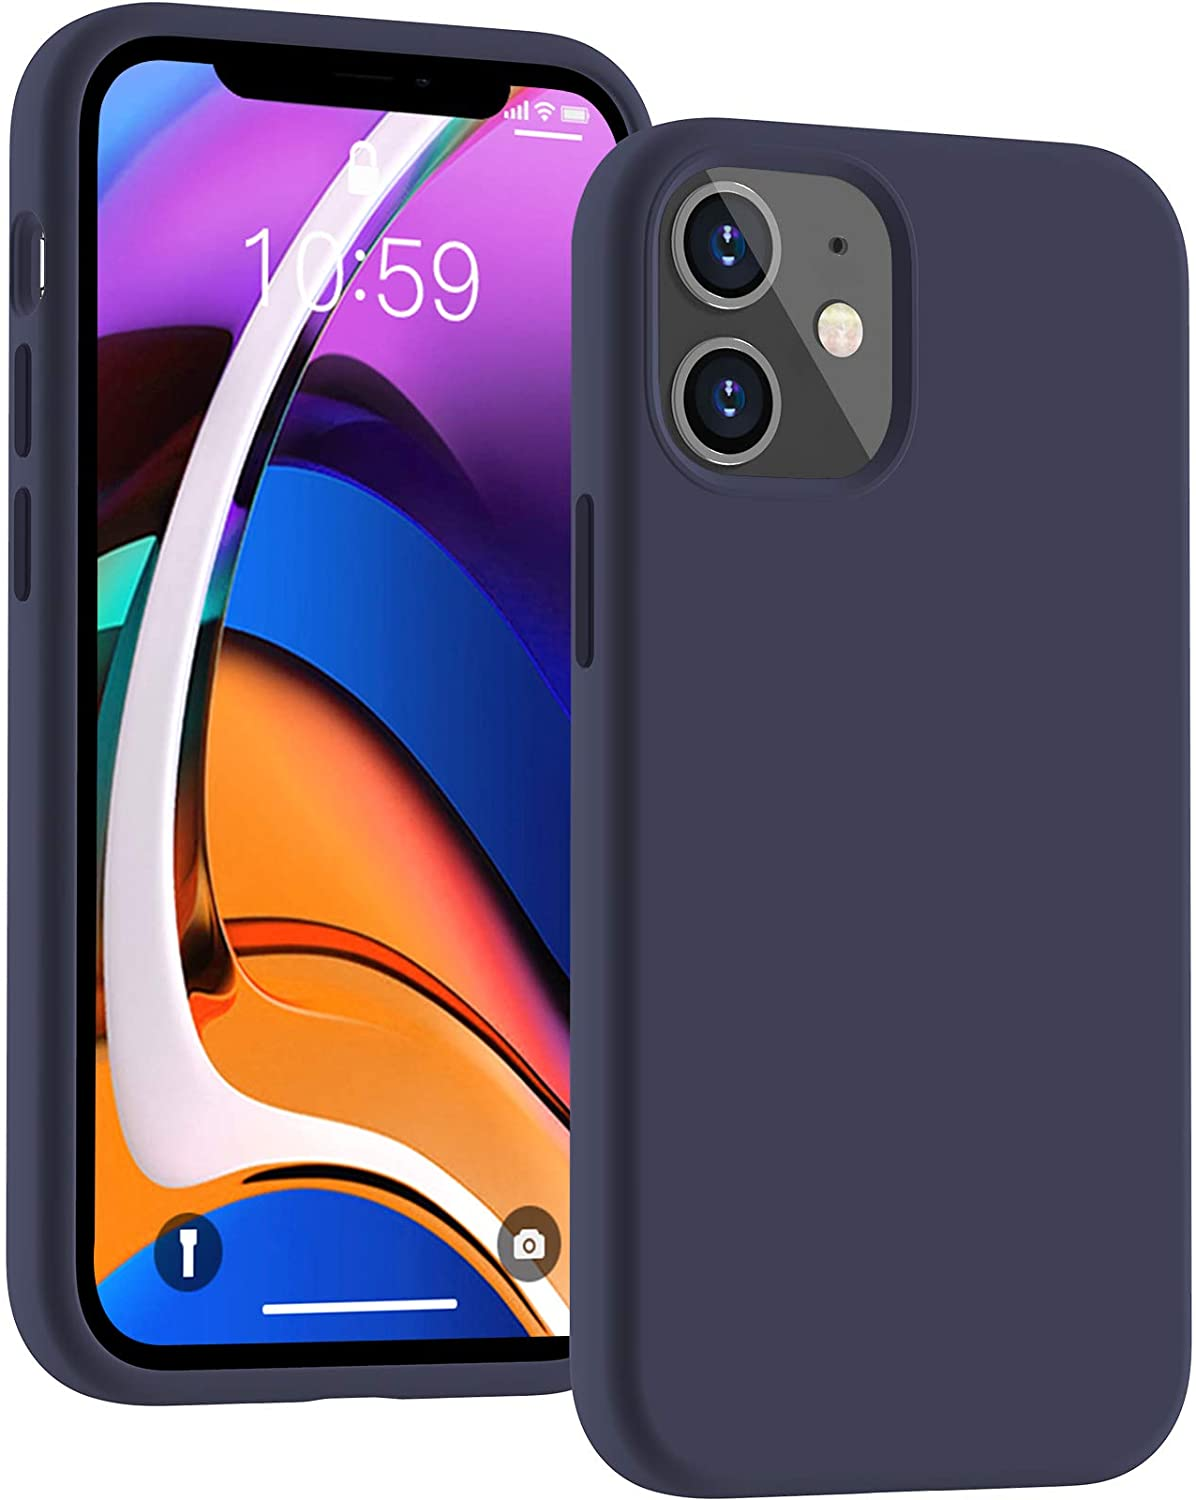 Cucell case for iPhone 12 Mini Case 5.4 inch(2020), Liquid Silicone Design 12 Mini Cases Gel Rubber Full Body Protection Shockproof Shell with Microfiber Durable Drop Proof Cover-Navy Blue